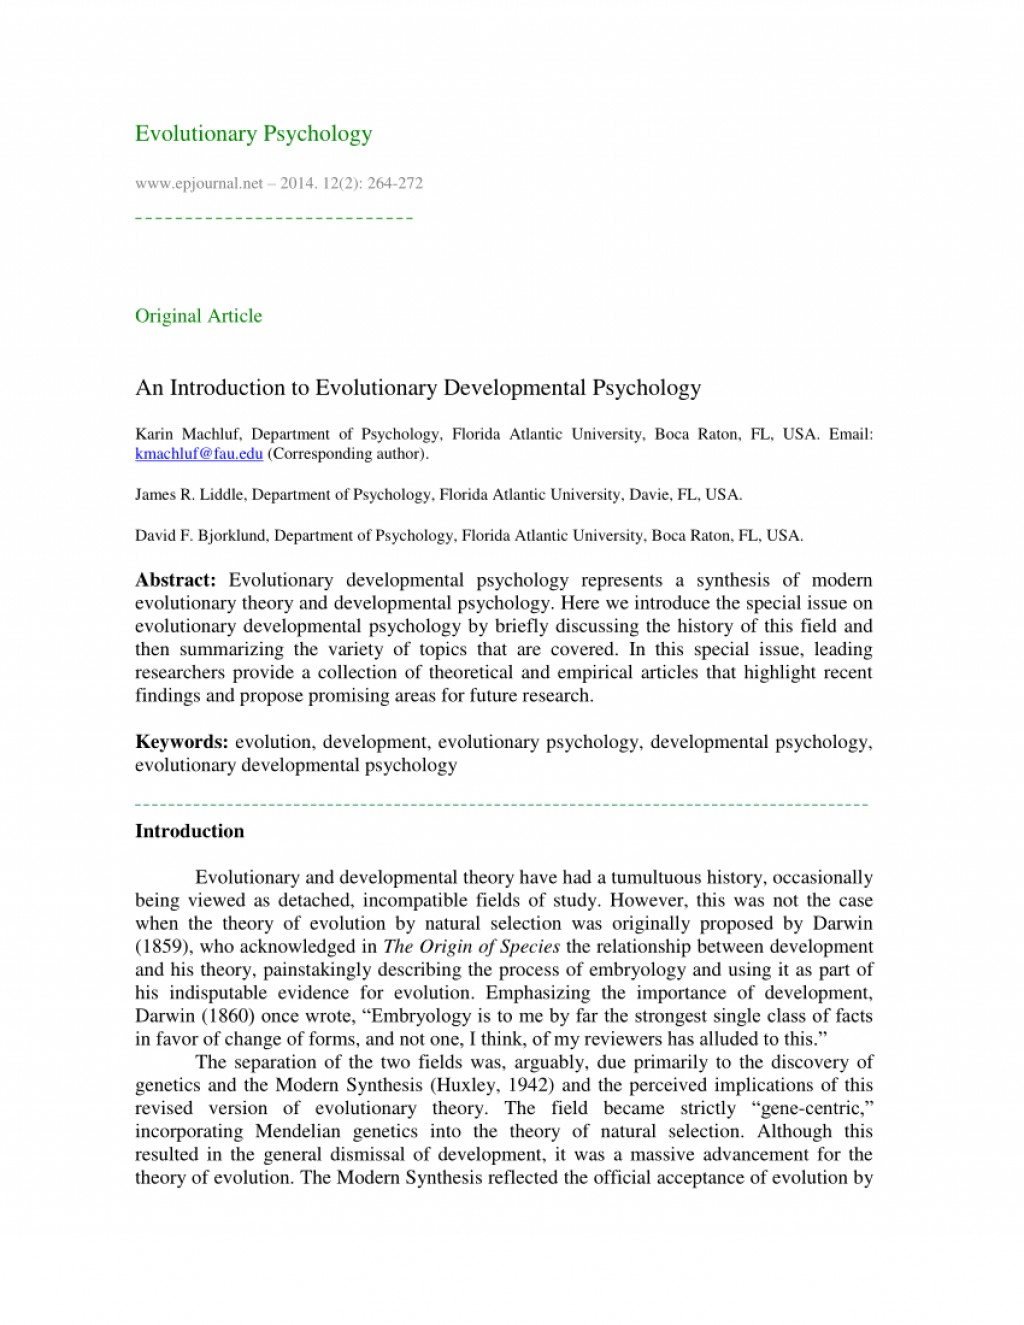 003 Evolutionary Psychology Topics For Research Papers Paper Unique Large